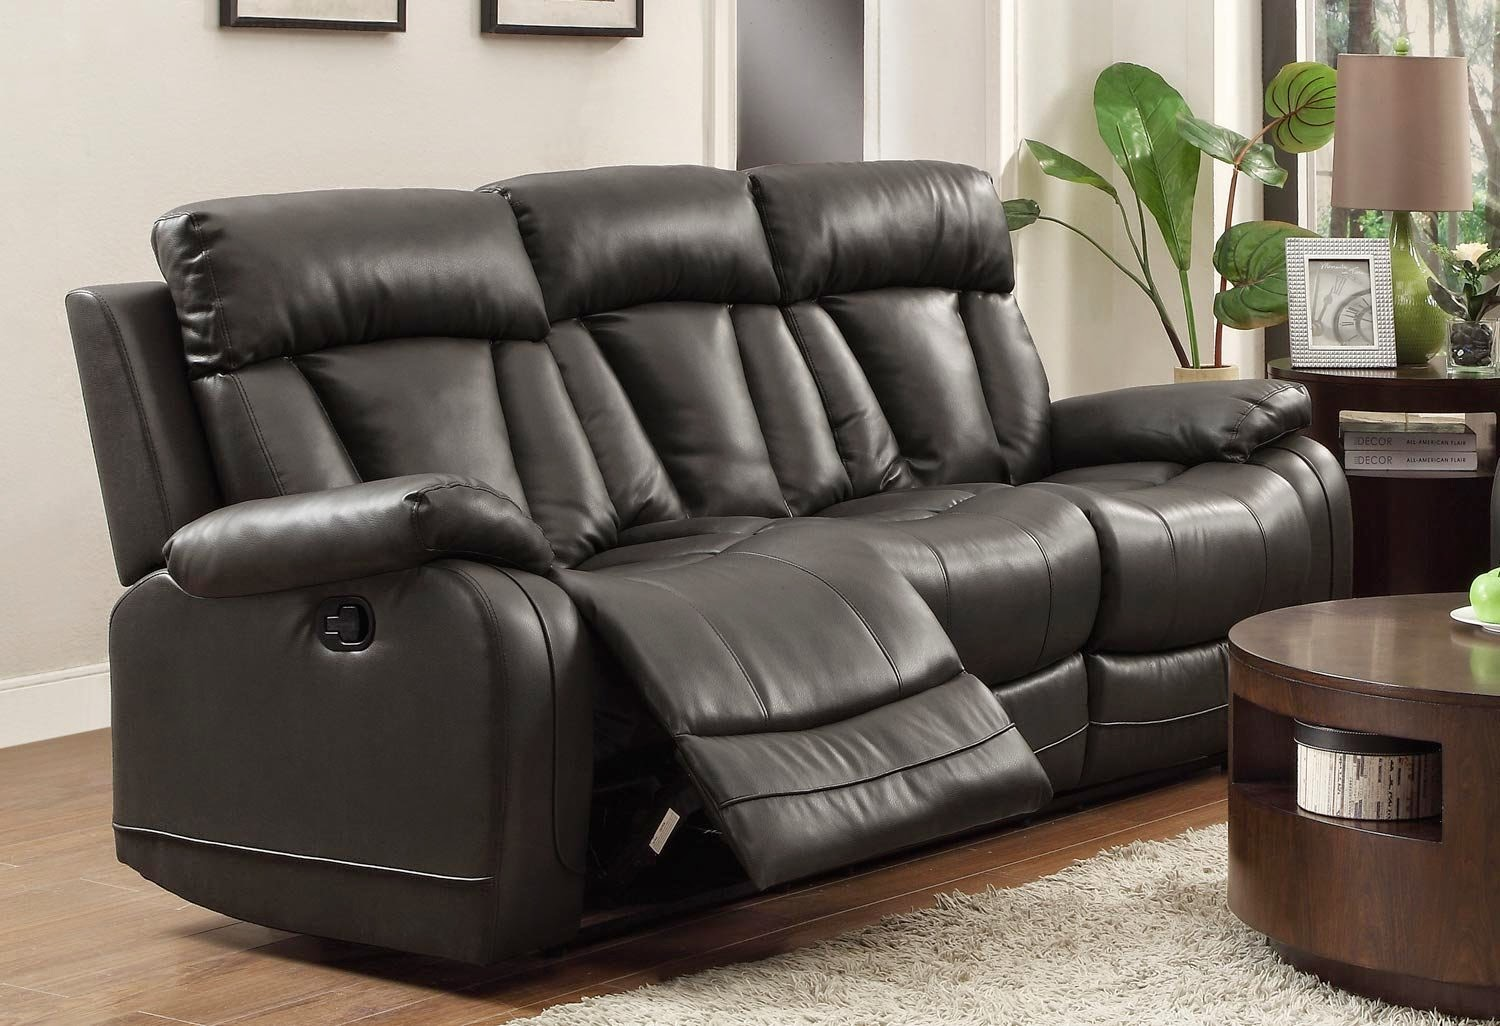 Homelegance 8500BLK-3 Double Black Black Leather Reclining Sofa And Loveseat & Cheap Recliner Sofas For Sale: Black Leather Reclining Sofa And ... islam-shia.org